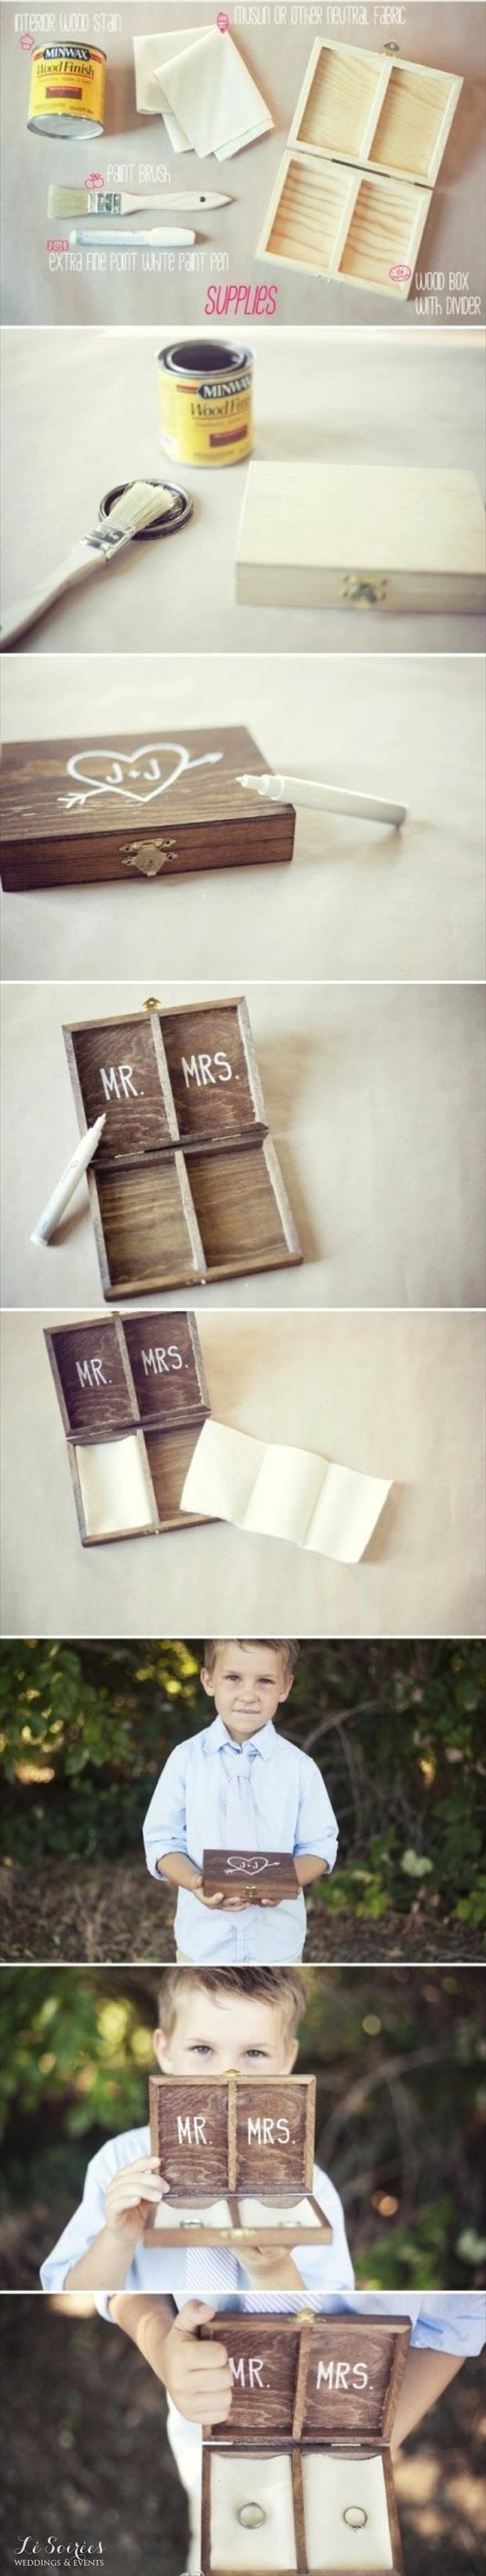 wedding ring box craft ideas